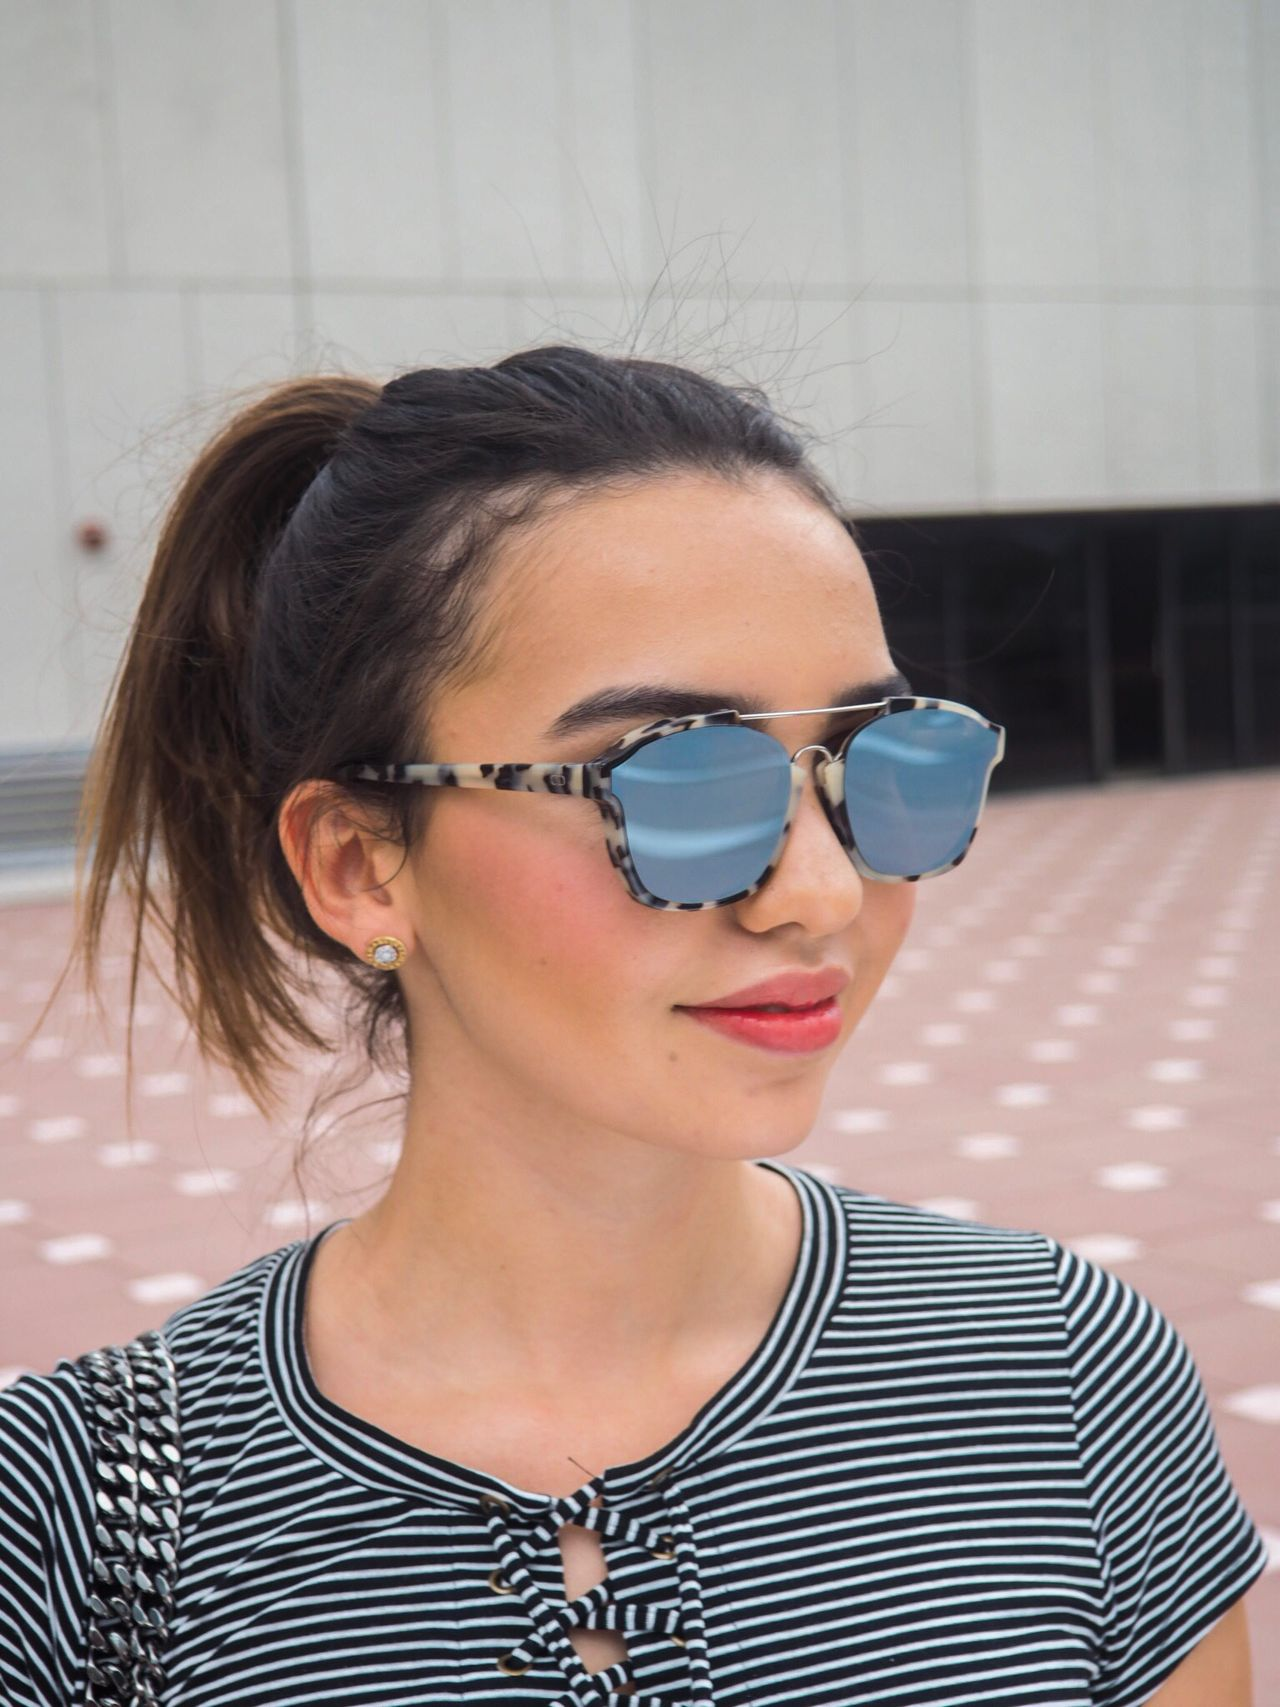 Roof portrait Headshot Portrait Sunglasses Close-up Beautiful Woman Day Outdoors Rooftop Kitlens